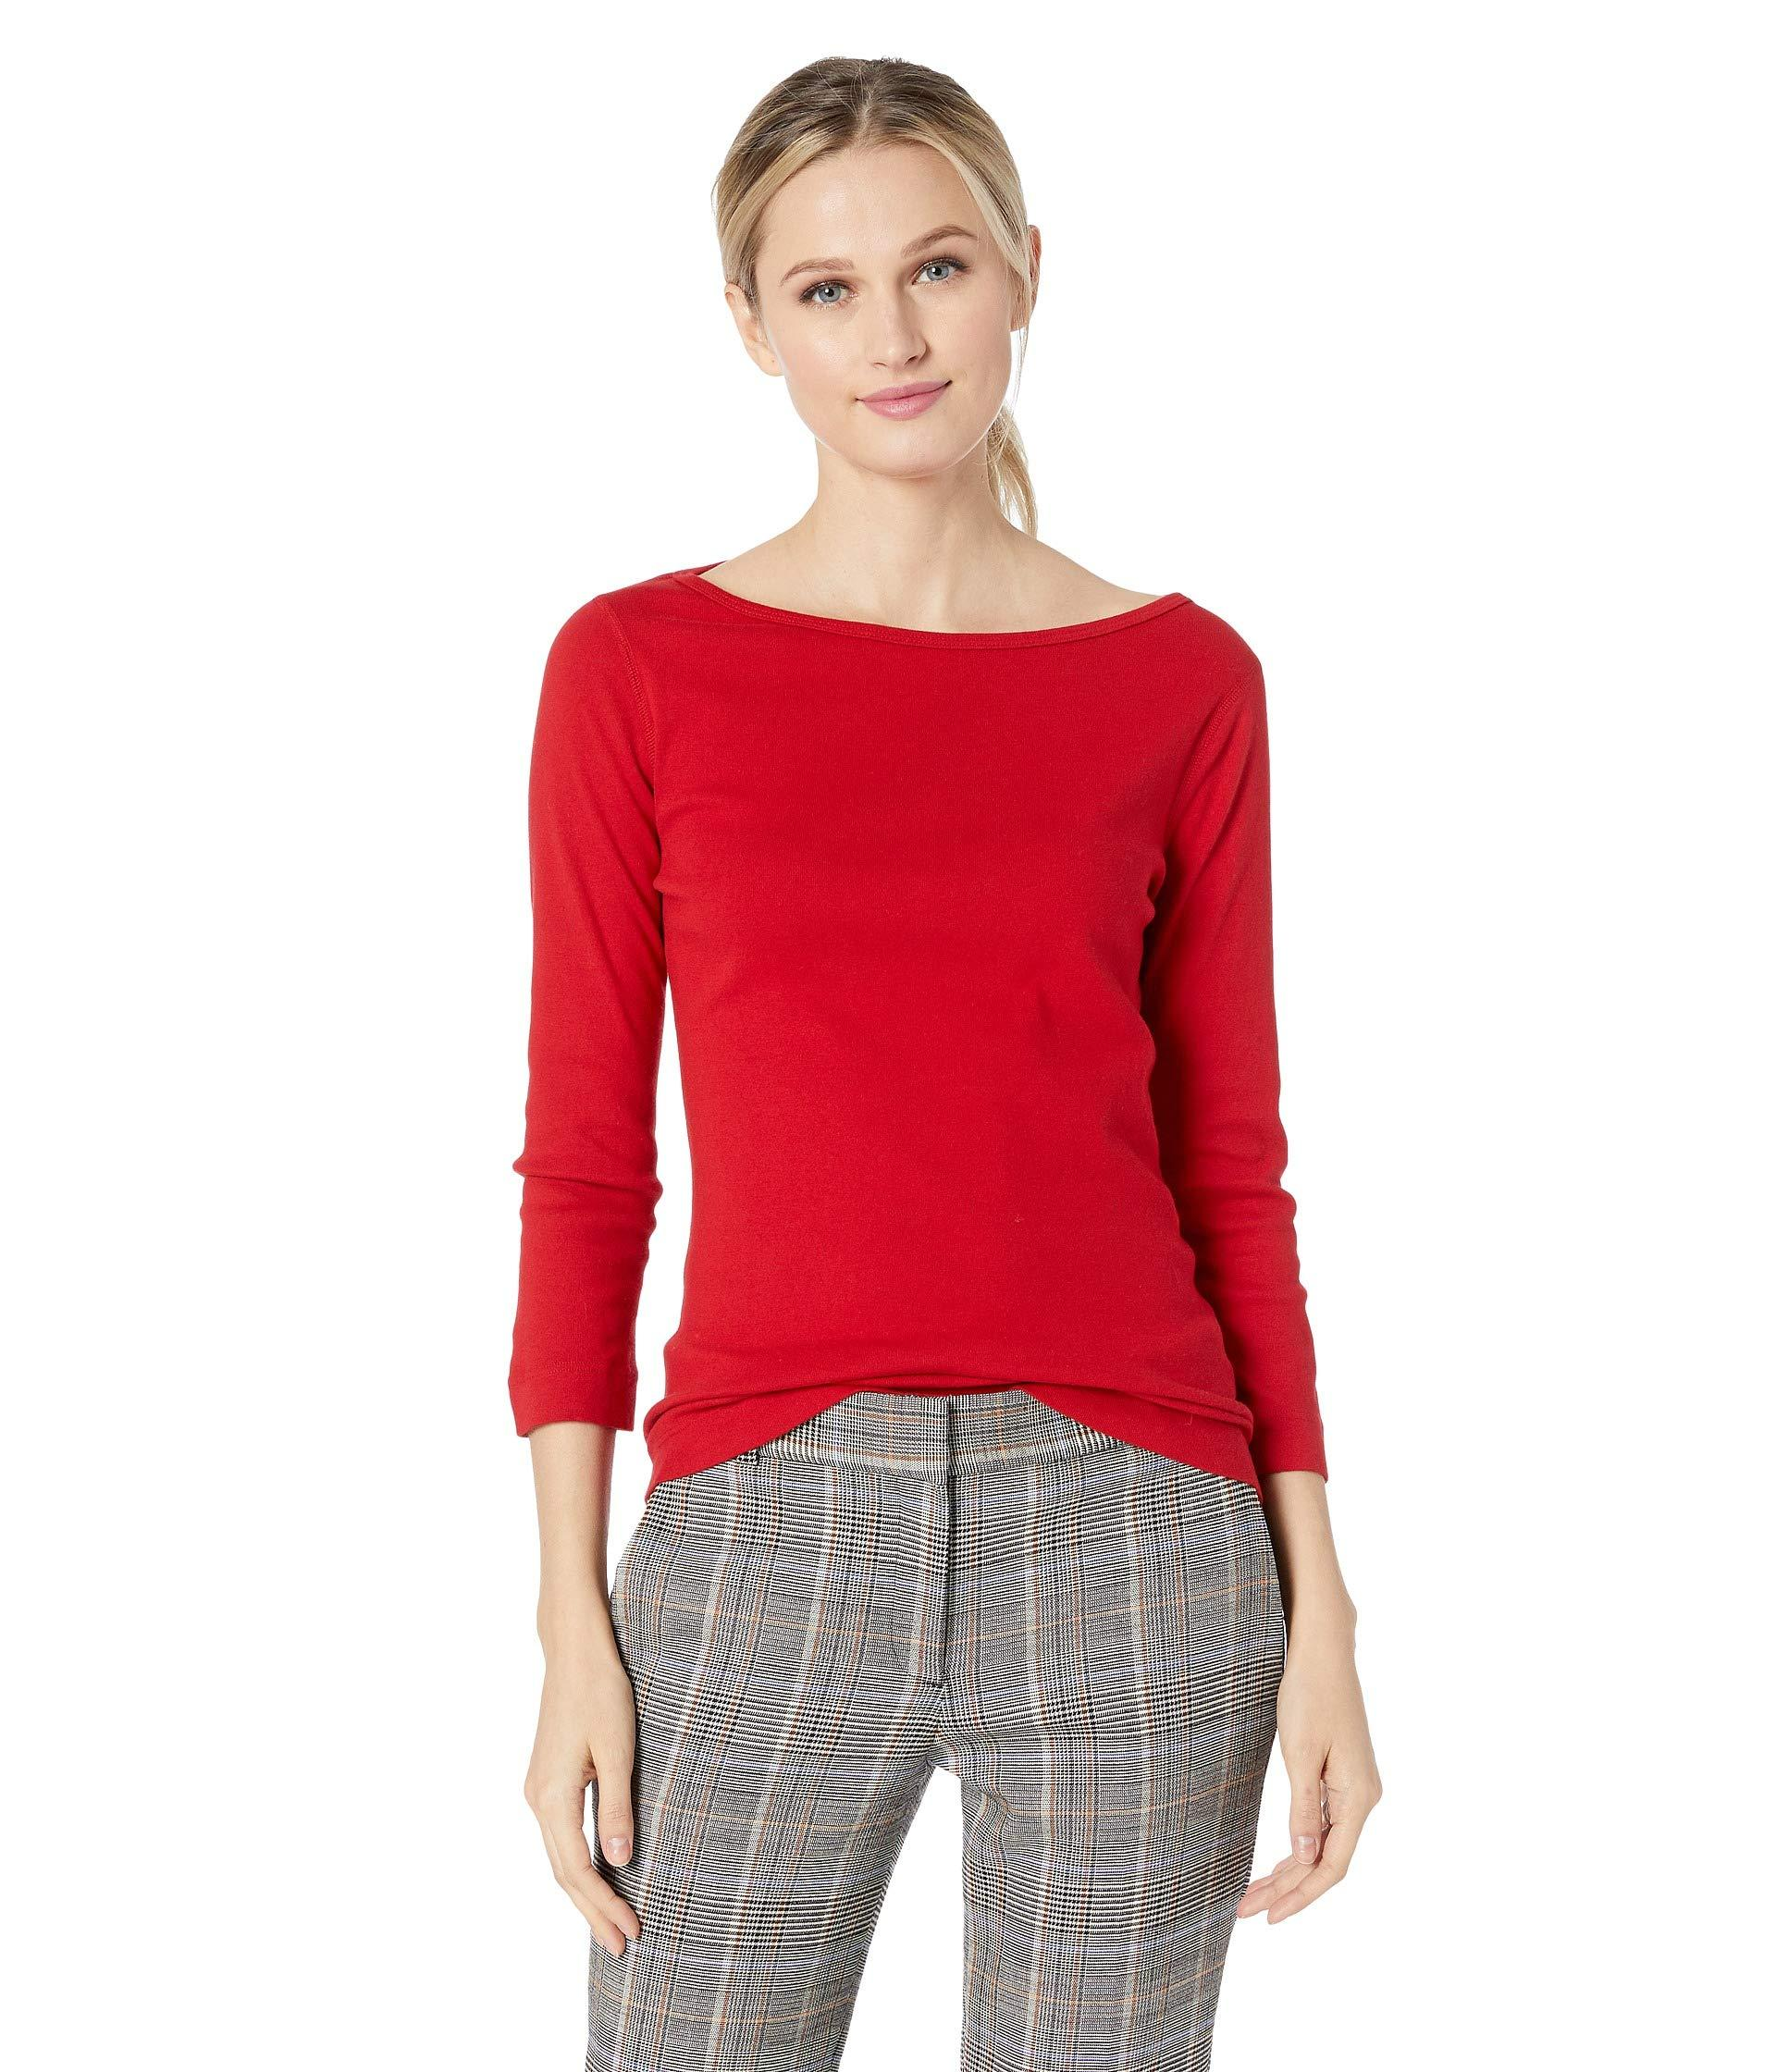 0bffd4402705 Three Dots 100% Cotton Heritage Knit 3/4 Sleeve British Tee ...